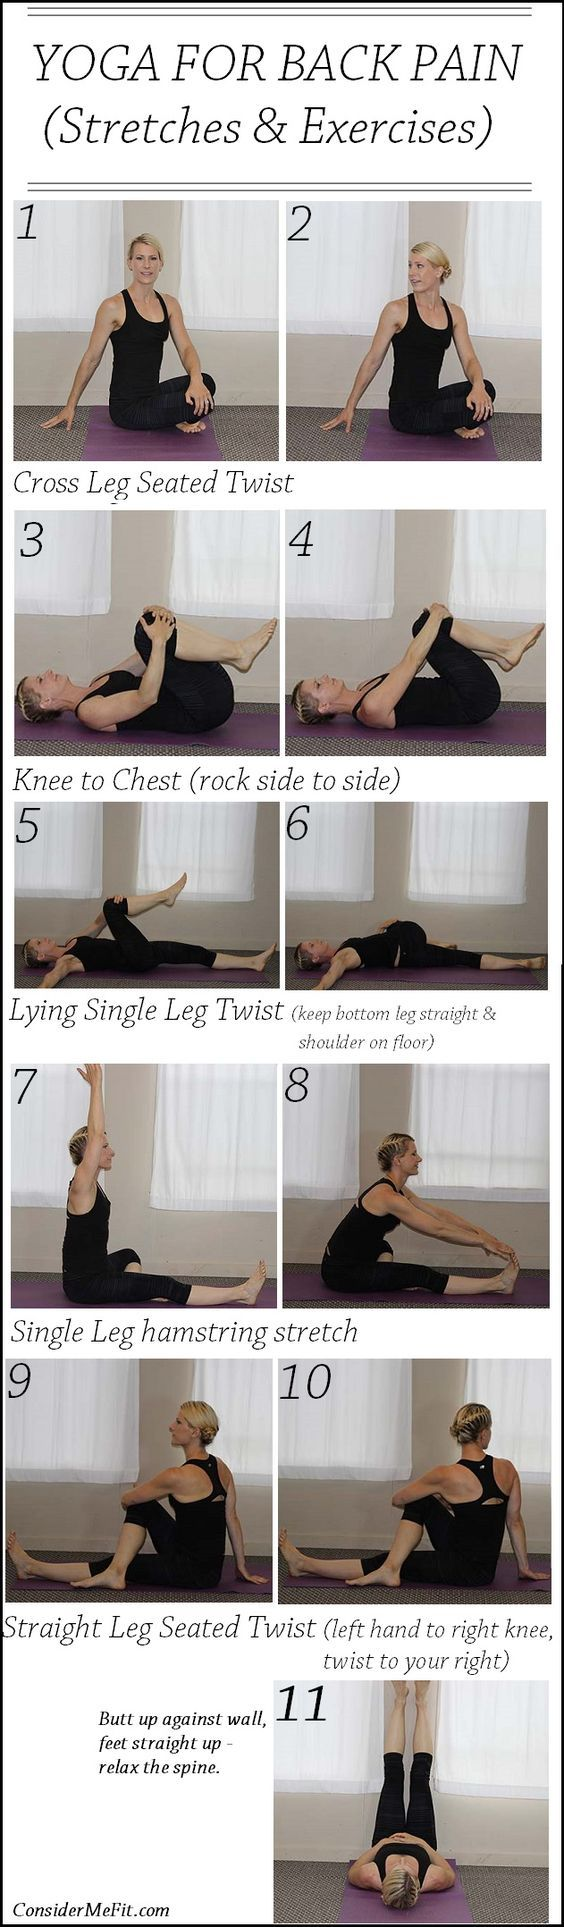 If you suffer lower back pain, this is the post for you! We have compiled a post with the best lower back exercises and you won't want to miss them. We also have a video that shows you how to rehab your back and get on track. You also need to check out the Emotional Body Pain Chart. Check this informative post out now!